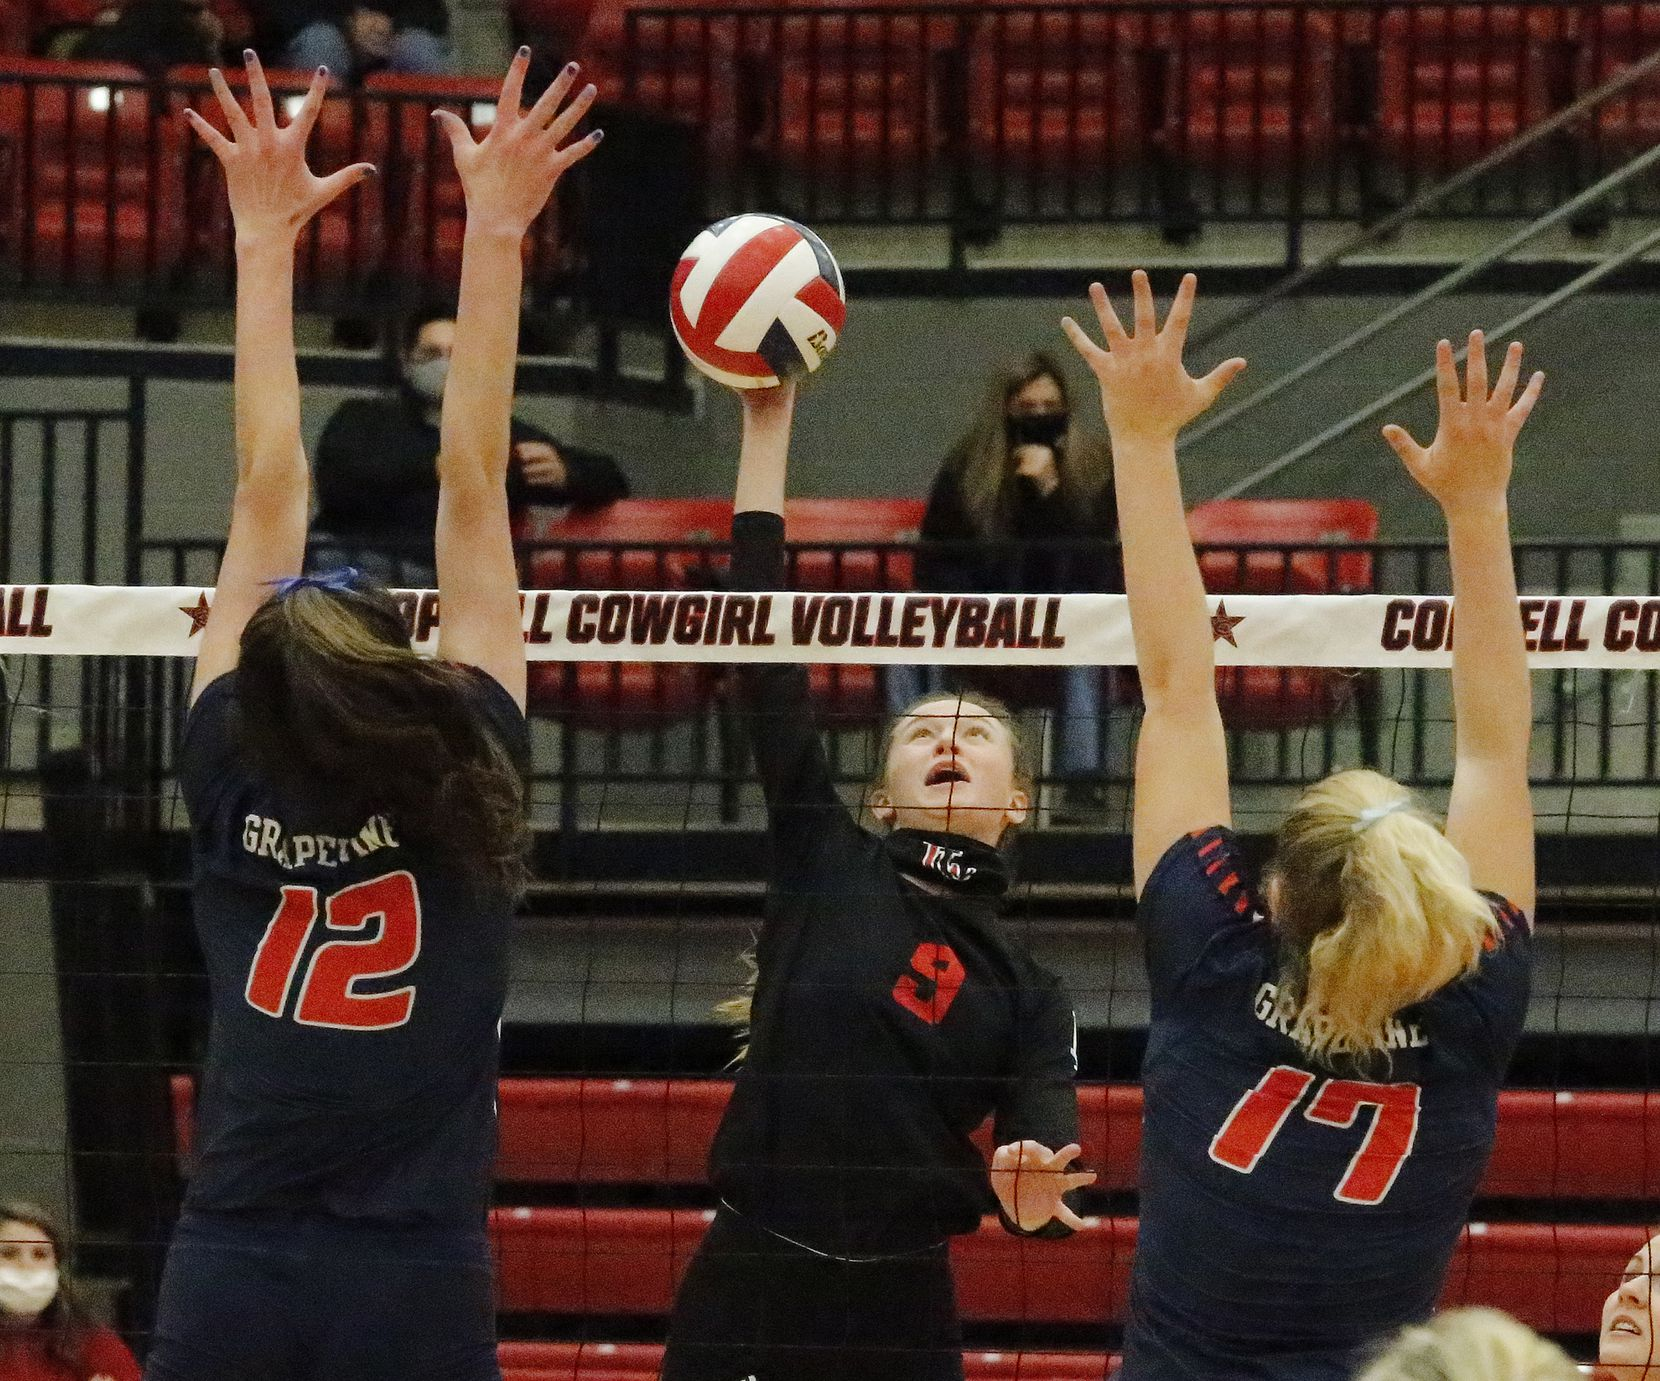 Lovejoy High School setter Averi Carlson (9) gets a hit between Grapevine High School outside hitter Janet DeMarris (12) and Grapevine High School middle blocker Lexi Mayfield (17) during game one as Grapevine High School played Lovejoy High School at Coppell High School in a Class 5A state semifinal match in Coppell on Monday, December 7, 2020.  (Stewart F. House/Special Contributor)